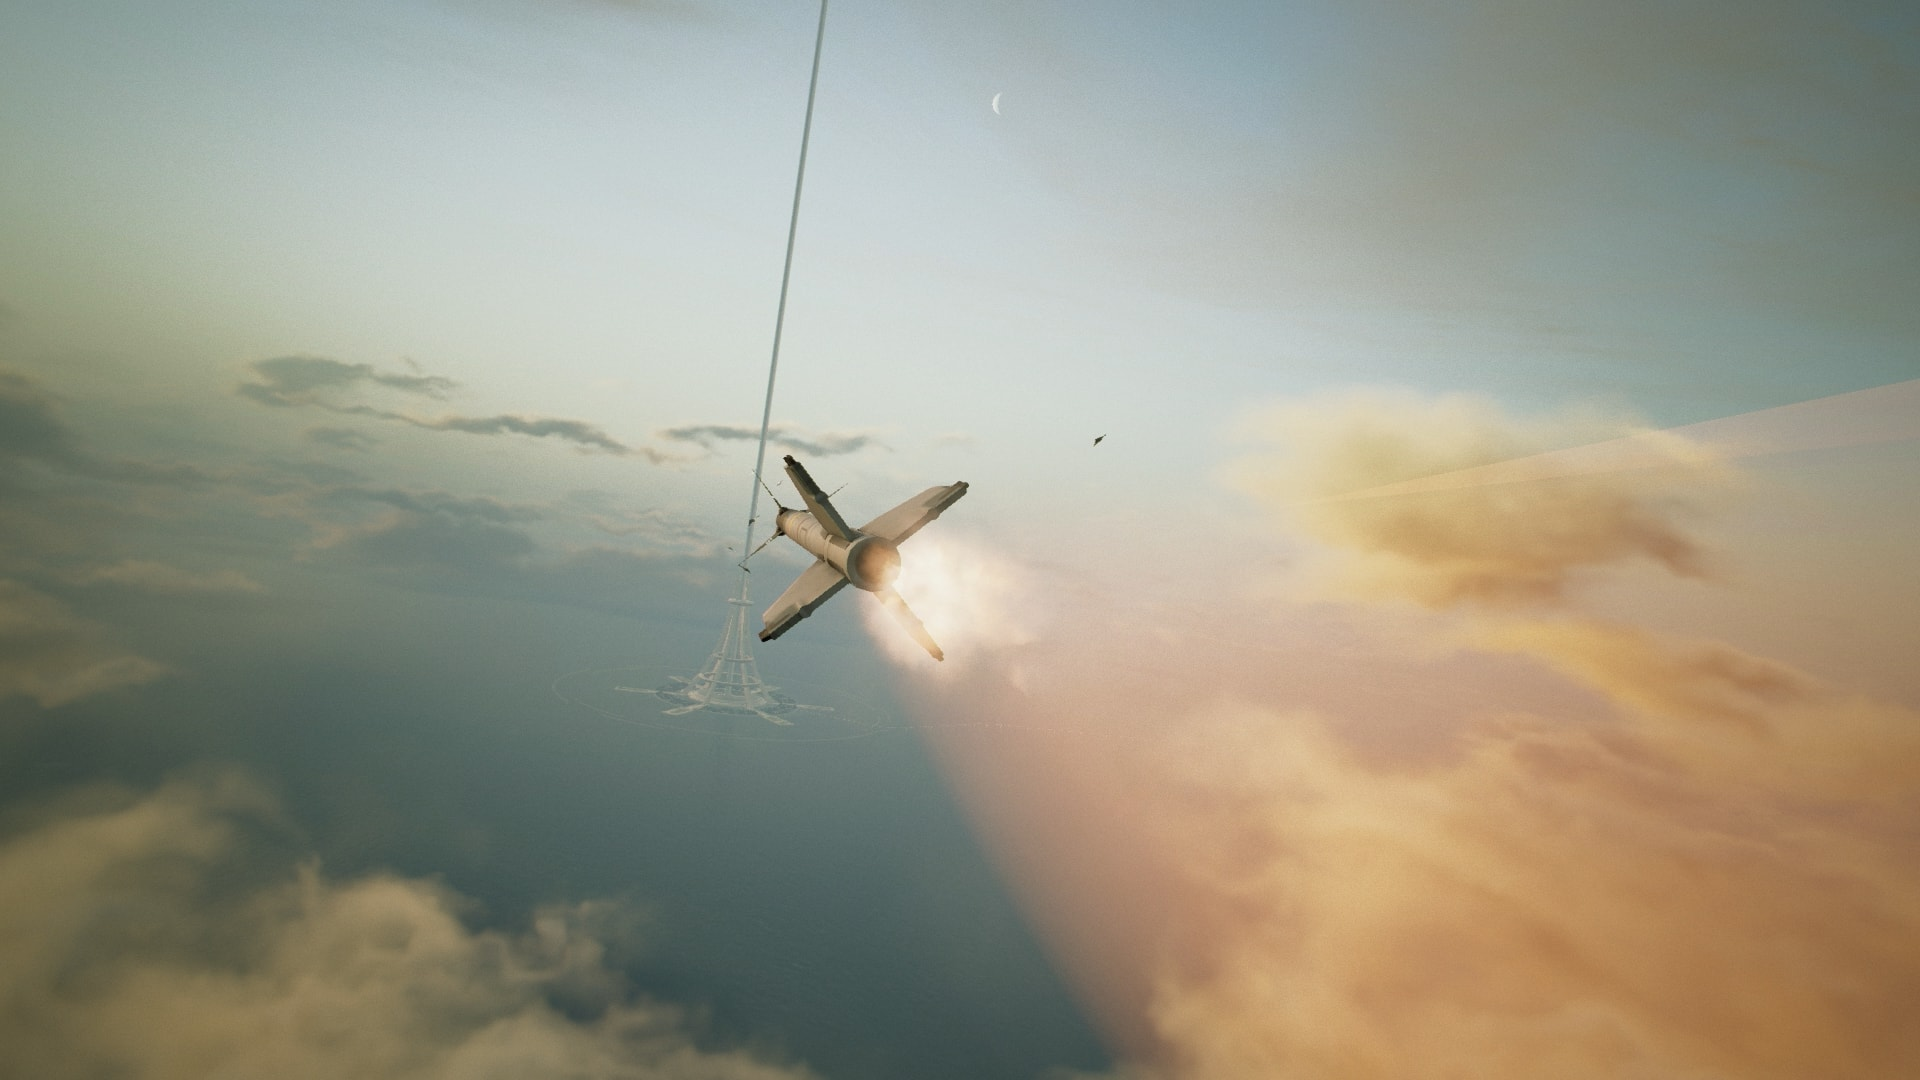 Bandai Namco Announces Release Date For Ace Combat 7: Skies Unknown